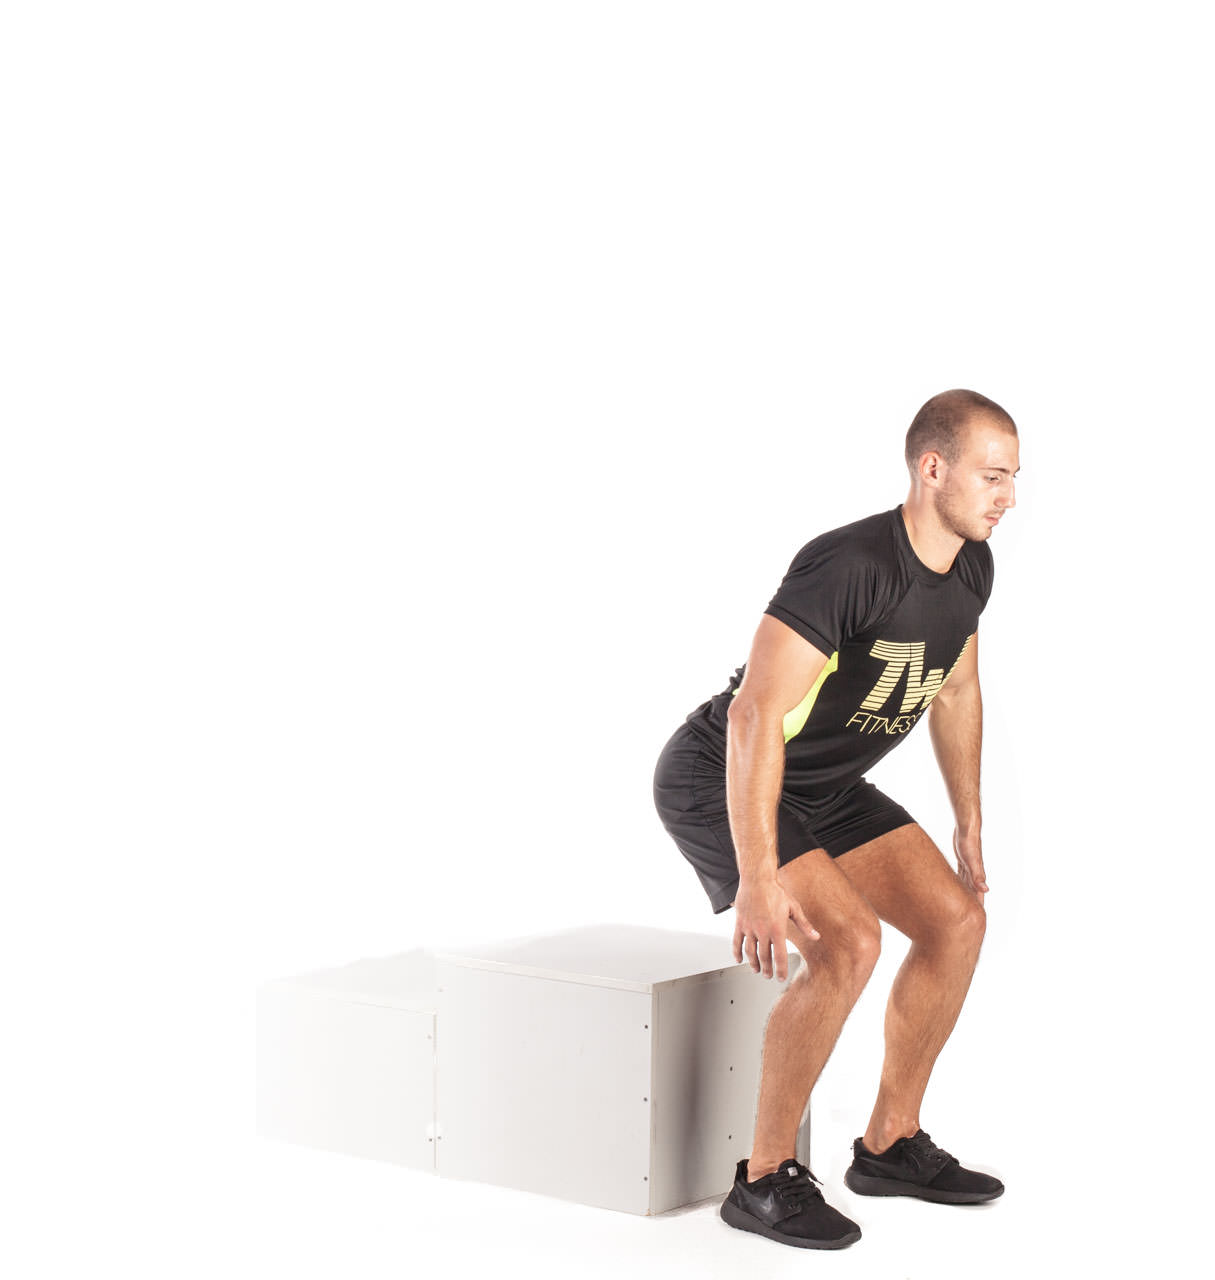 Two-Box Jump frame #7